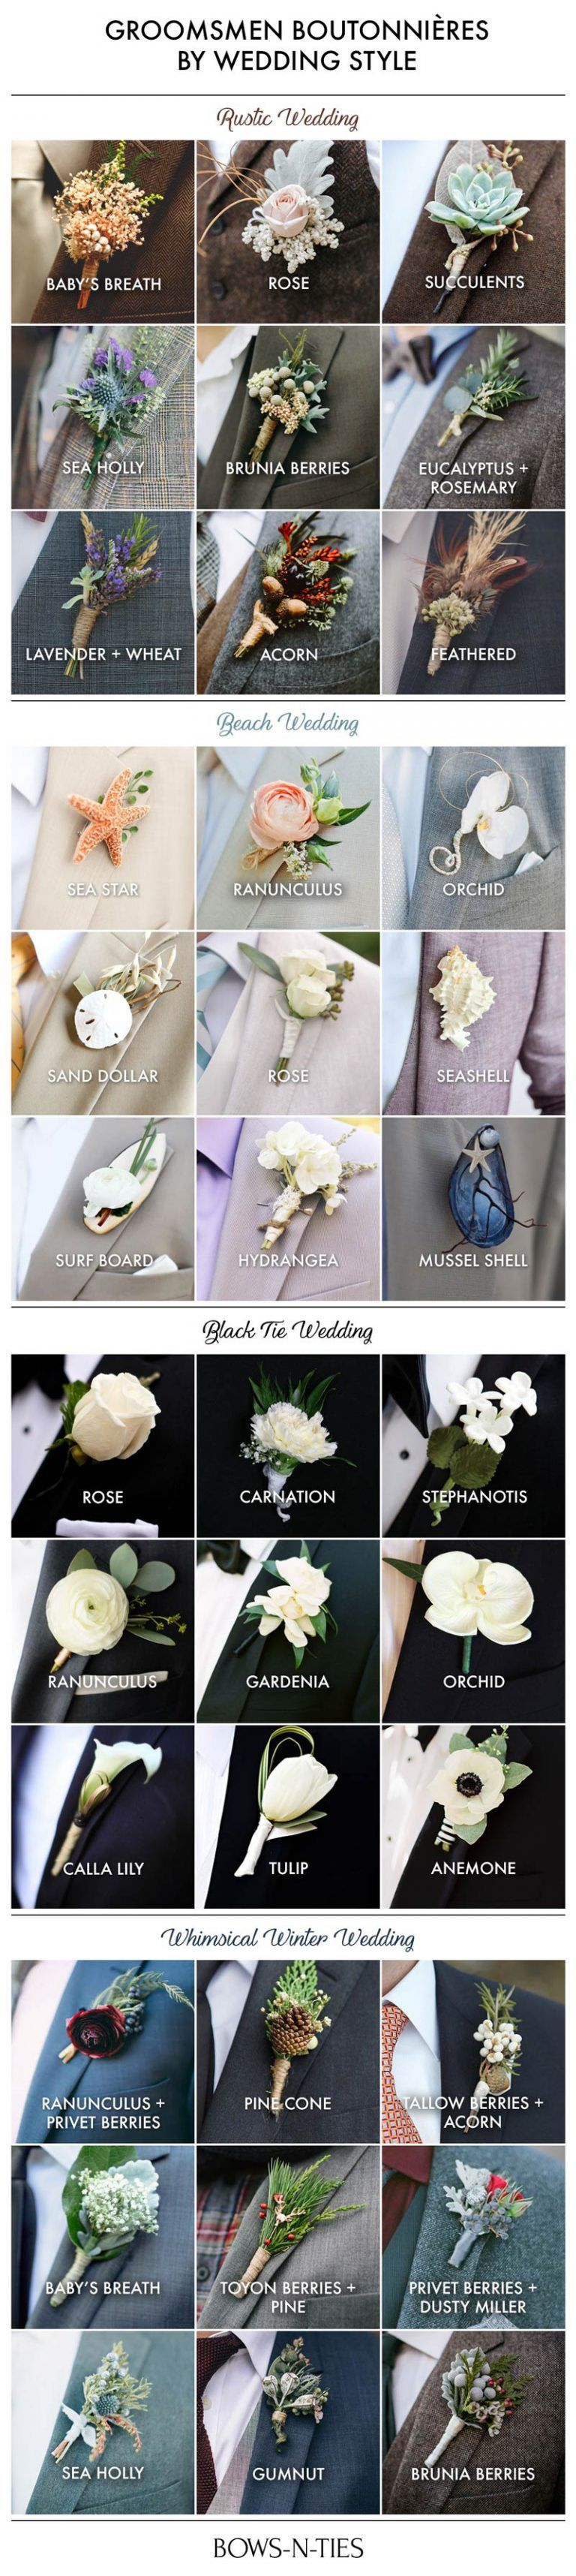 Wedding decorations on the beach october 2018 Wedding Boutonnieres  Wedding in   Pinterest  Wedding